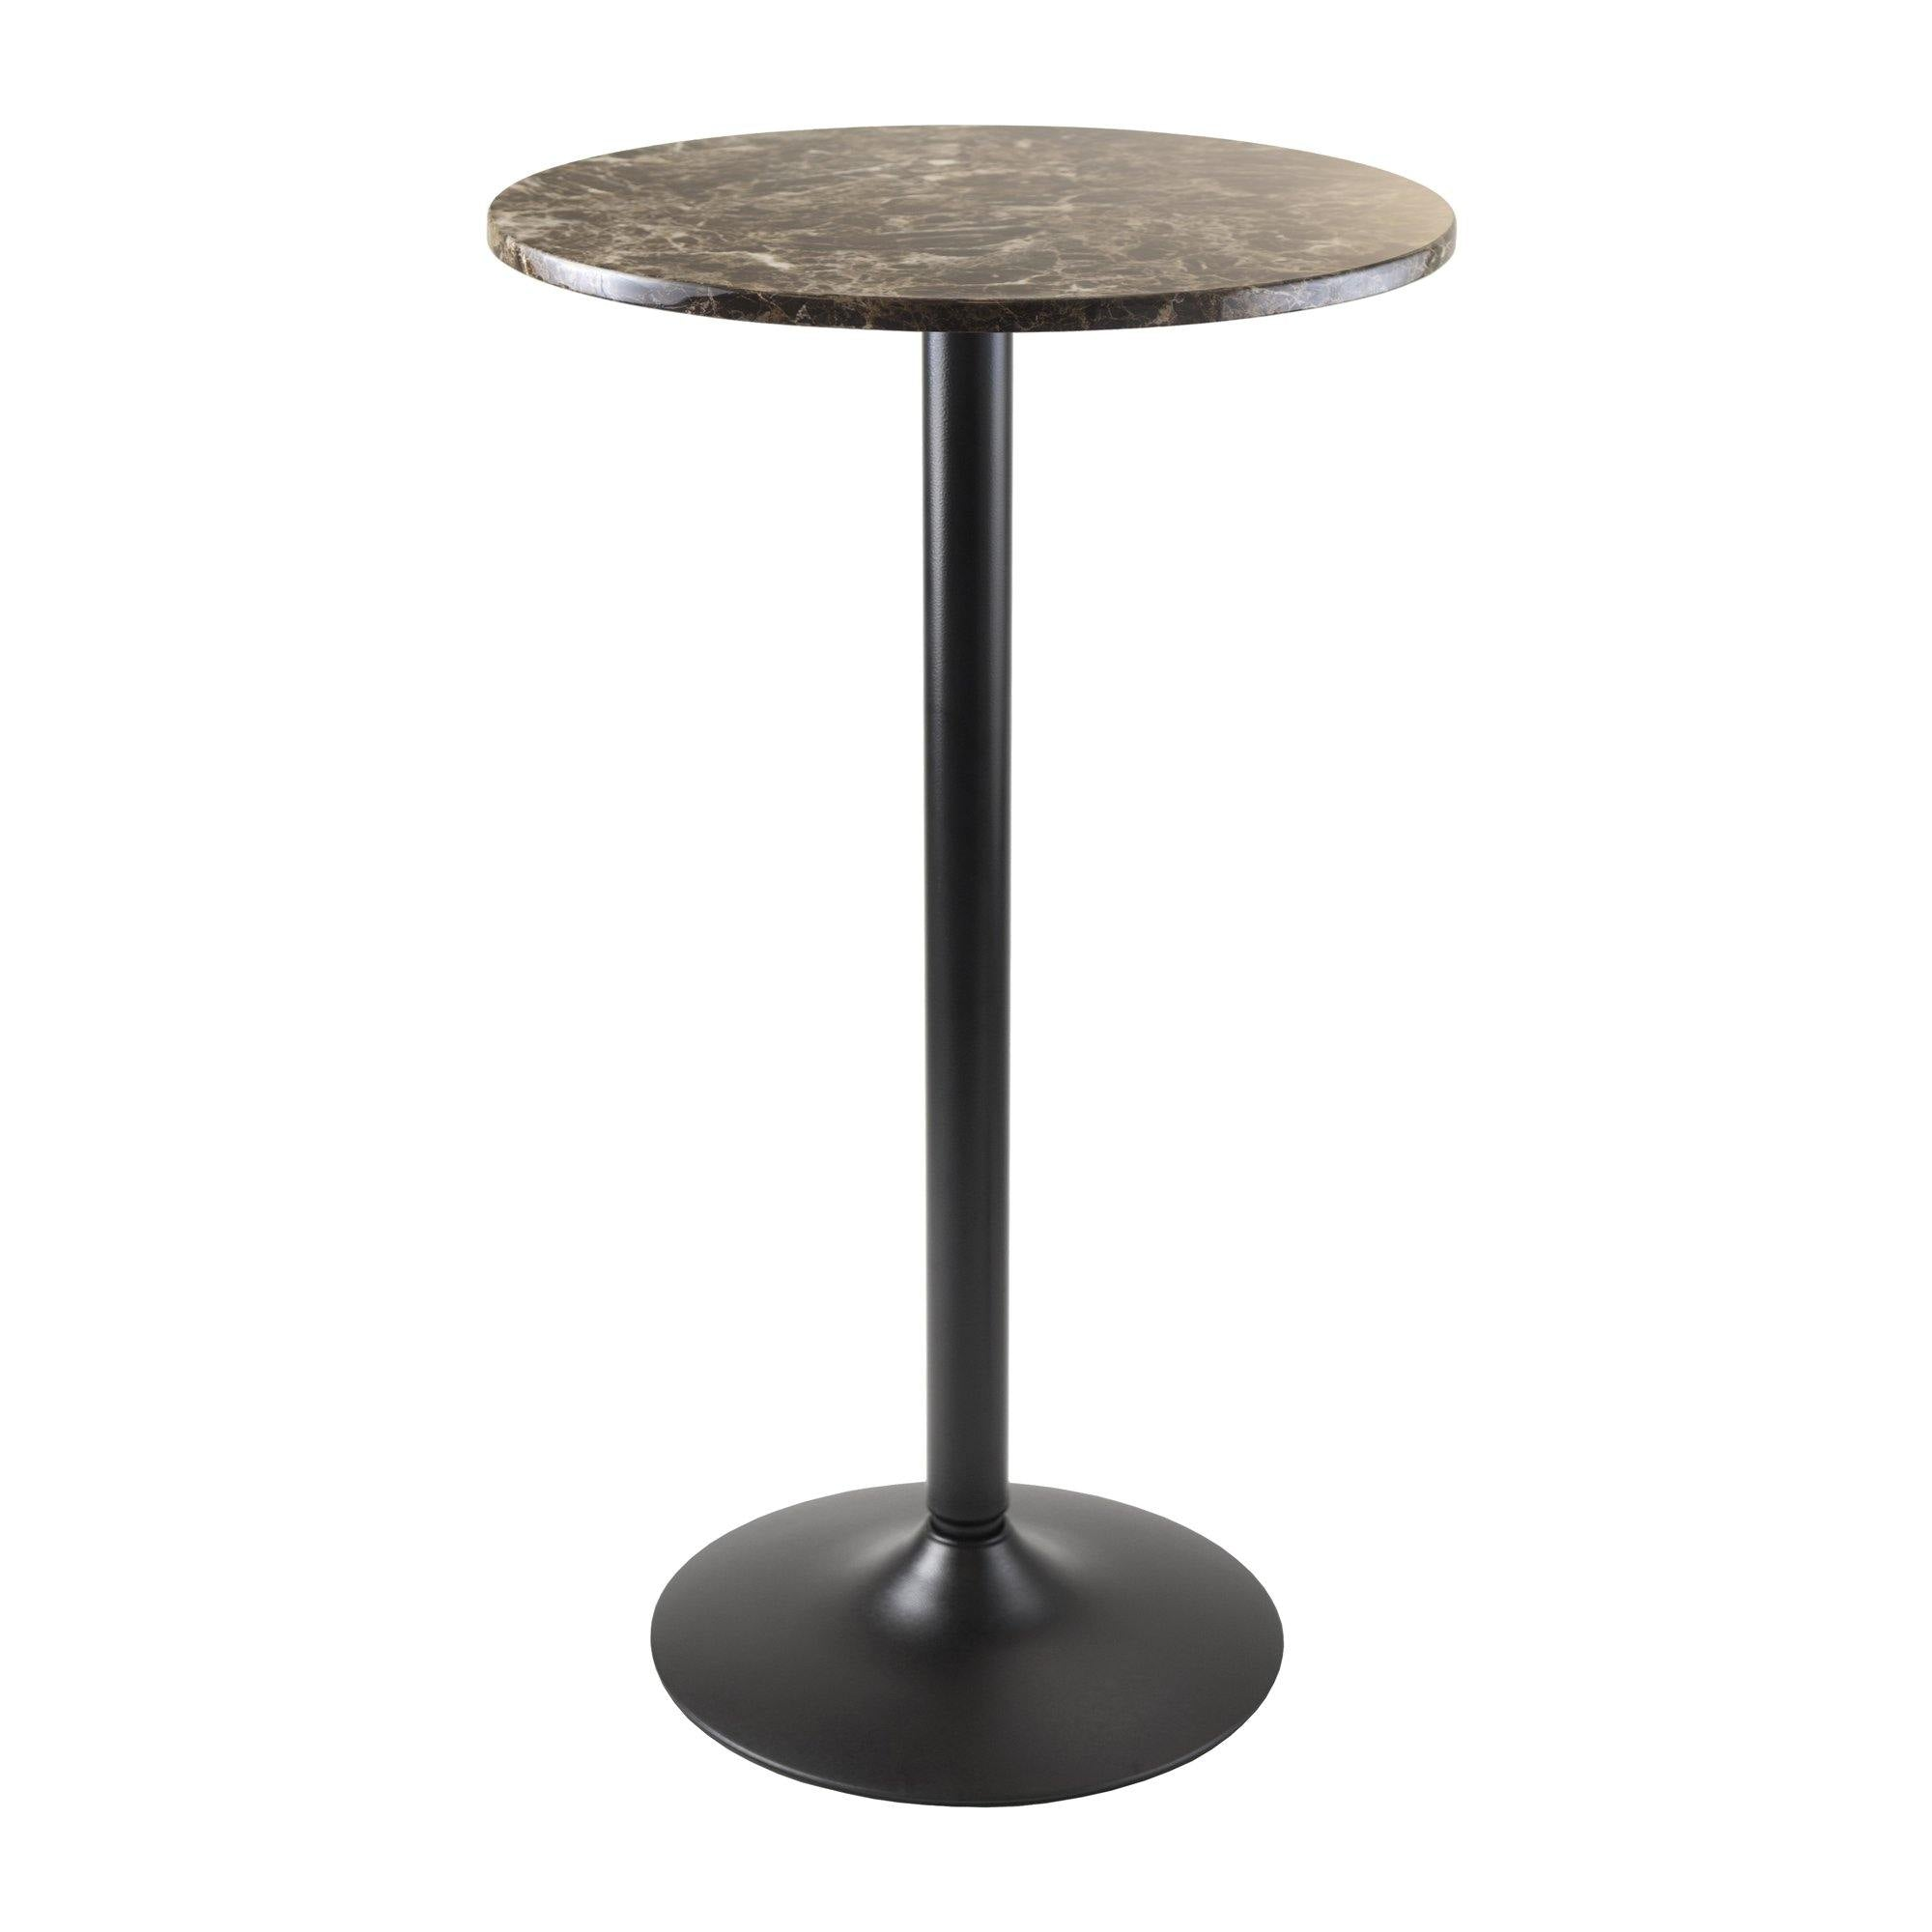 Cora Round Pub Table, Faux Marble Top, Black Base - My USA Furniture